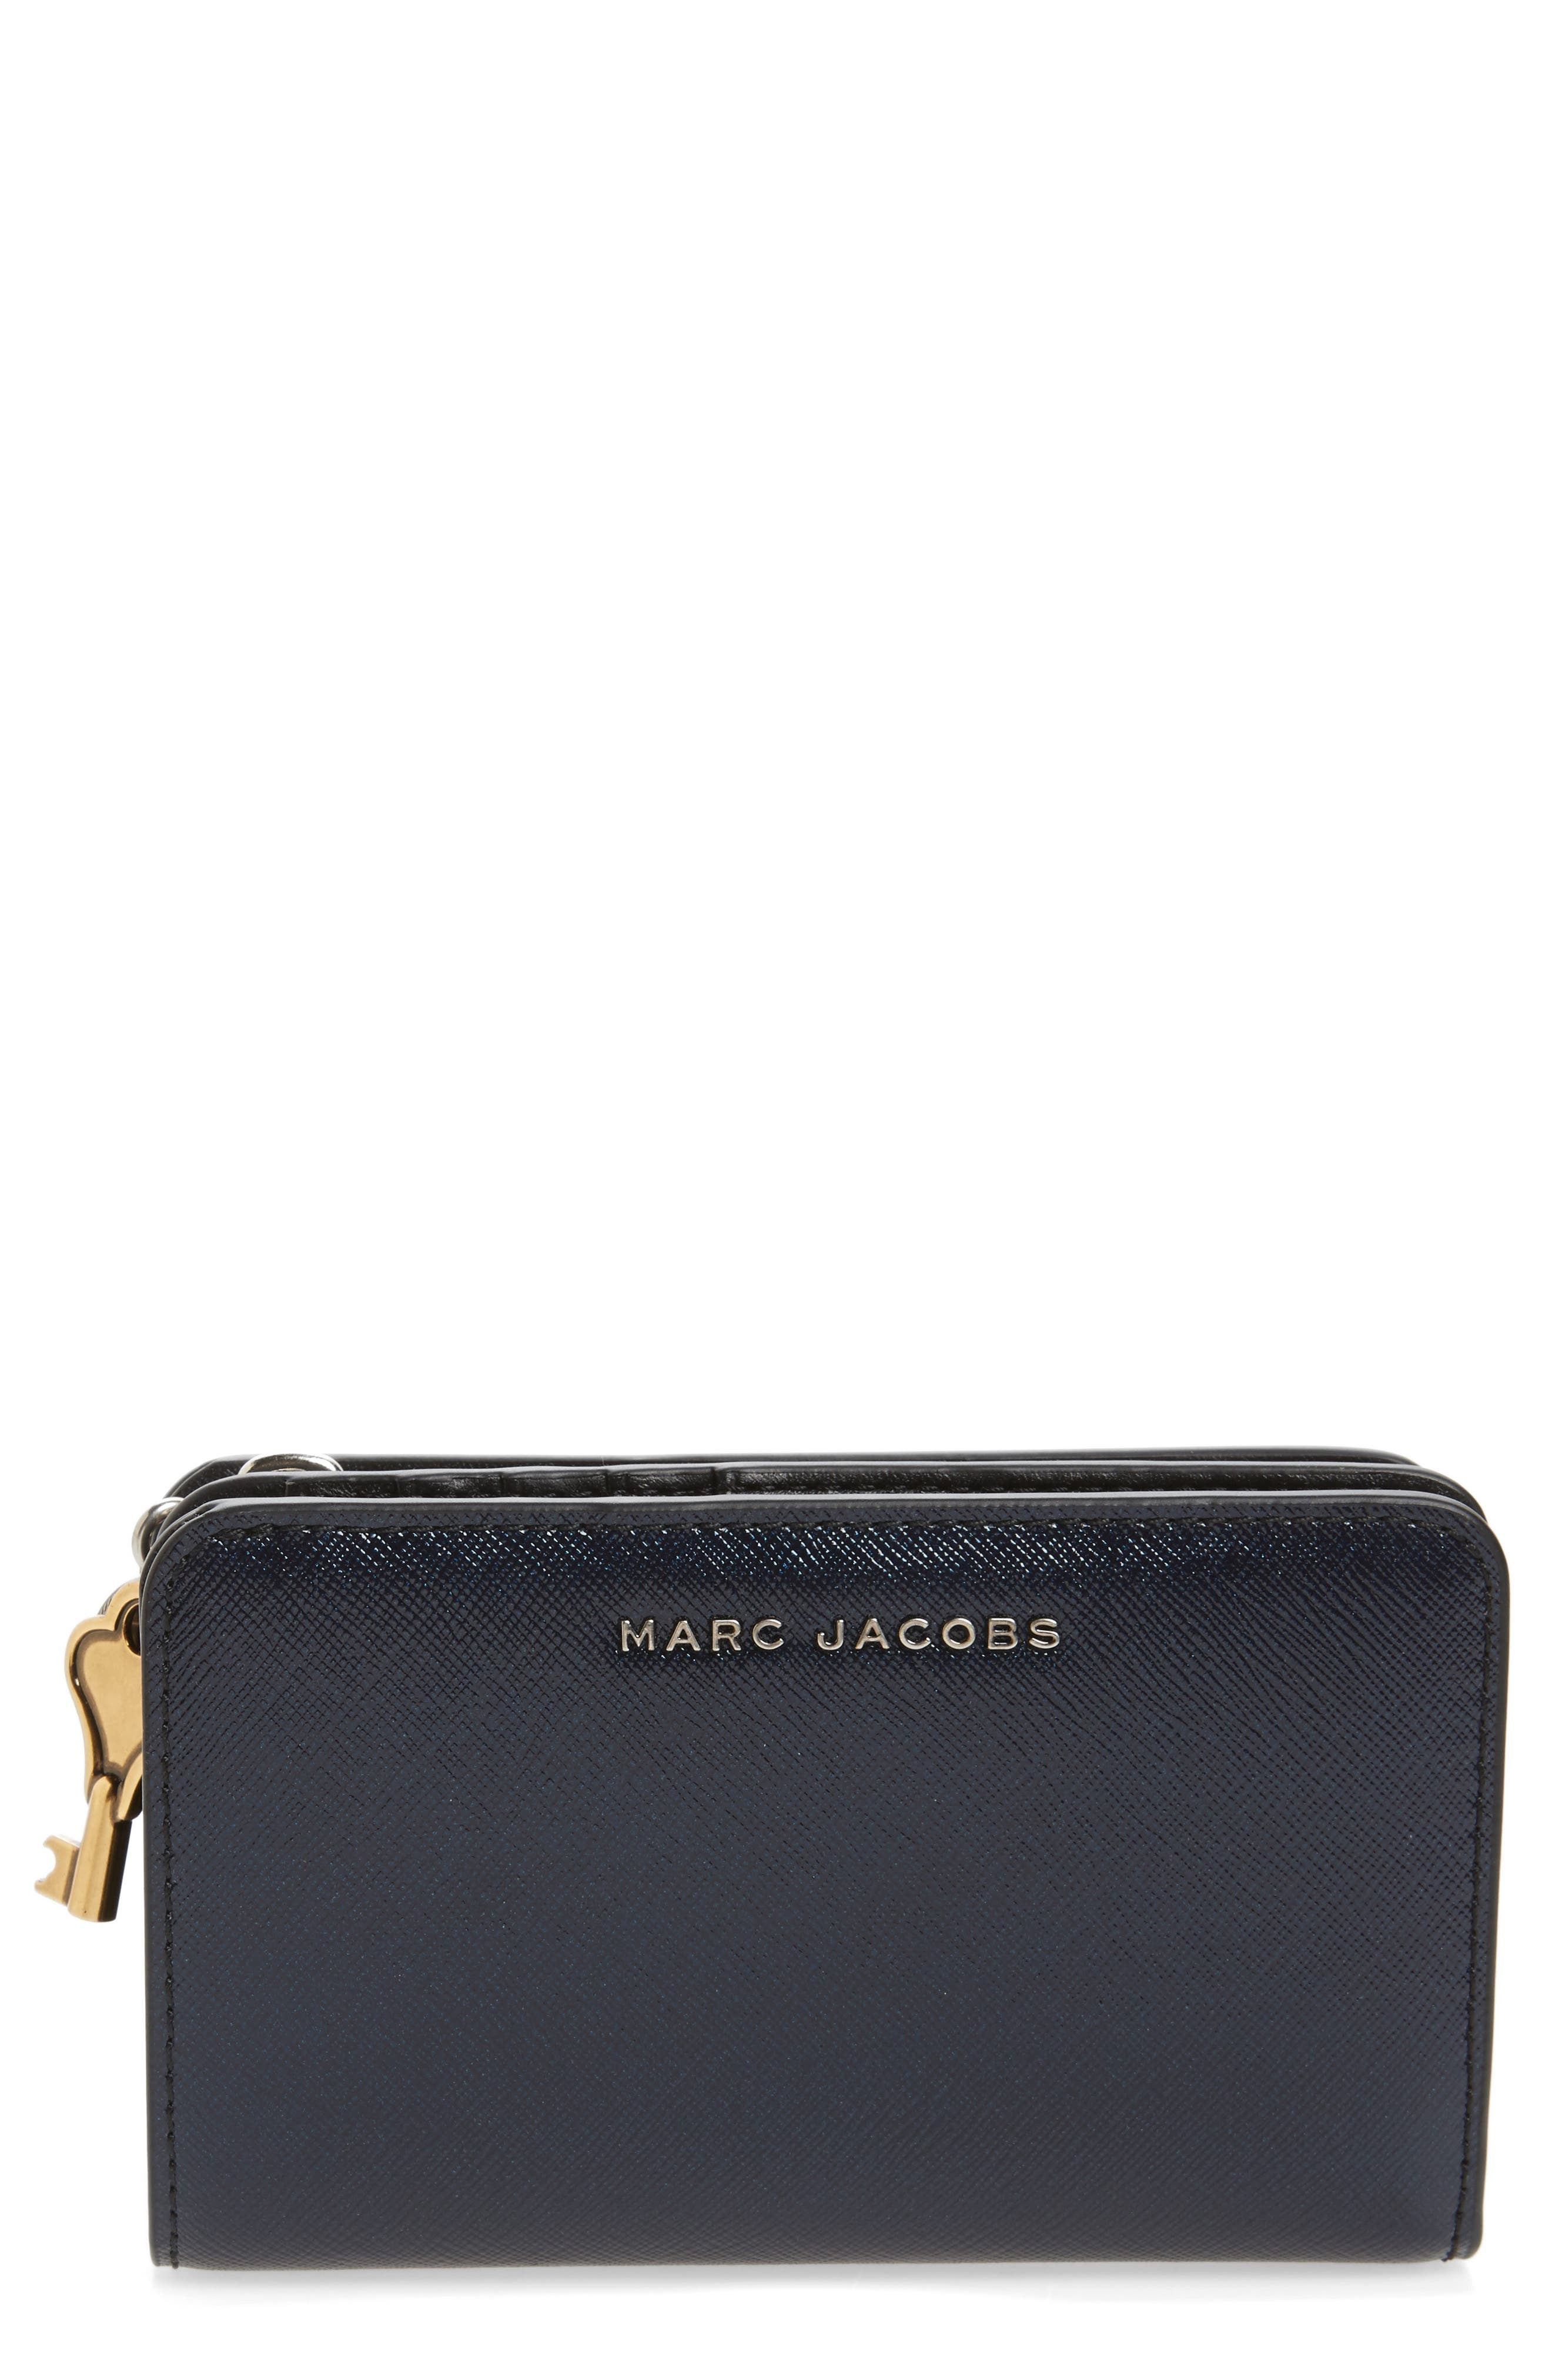 Saffiano Leather Compact Wallet,                         Main,                         color, Navy